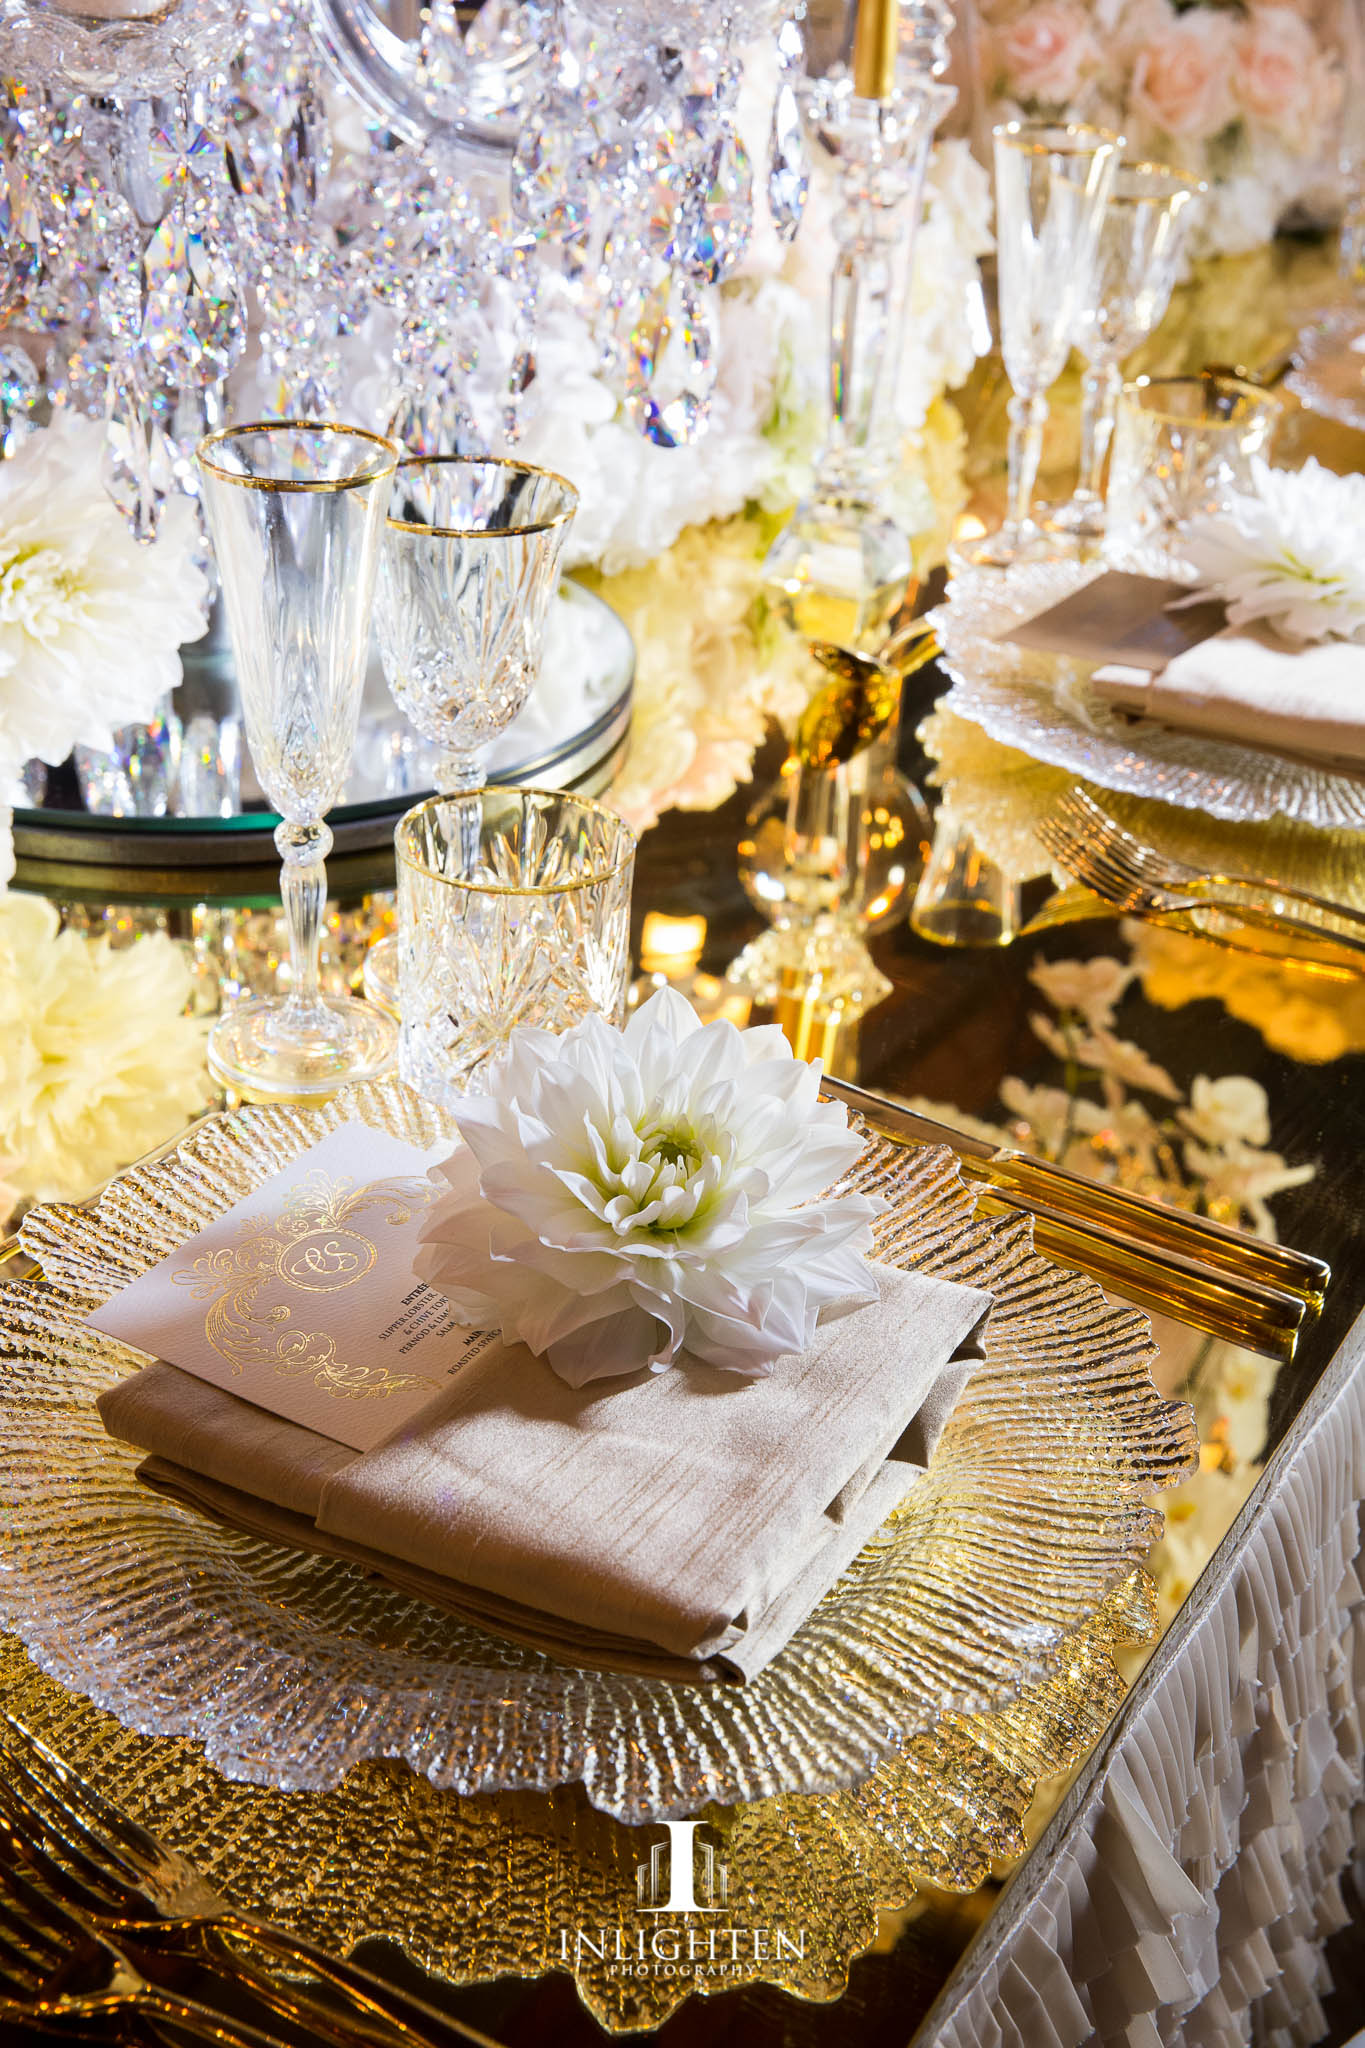 crystal_chargerplates_champagne linen_crystal glasswear_ champagne napkin_gold table top .jpg